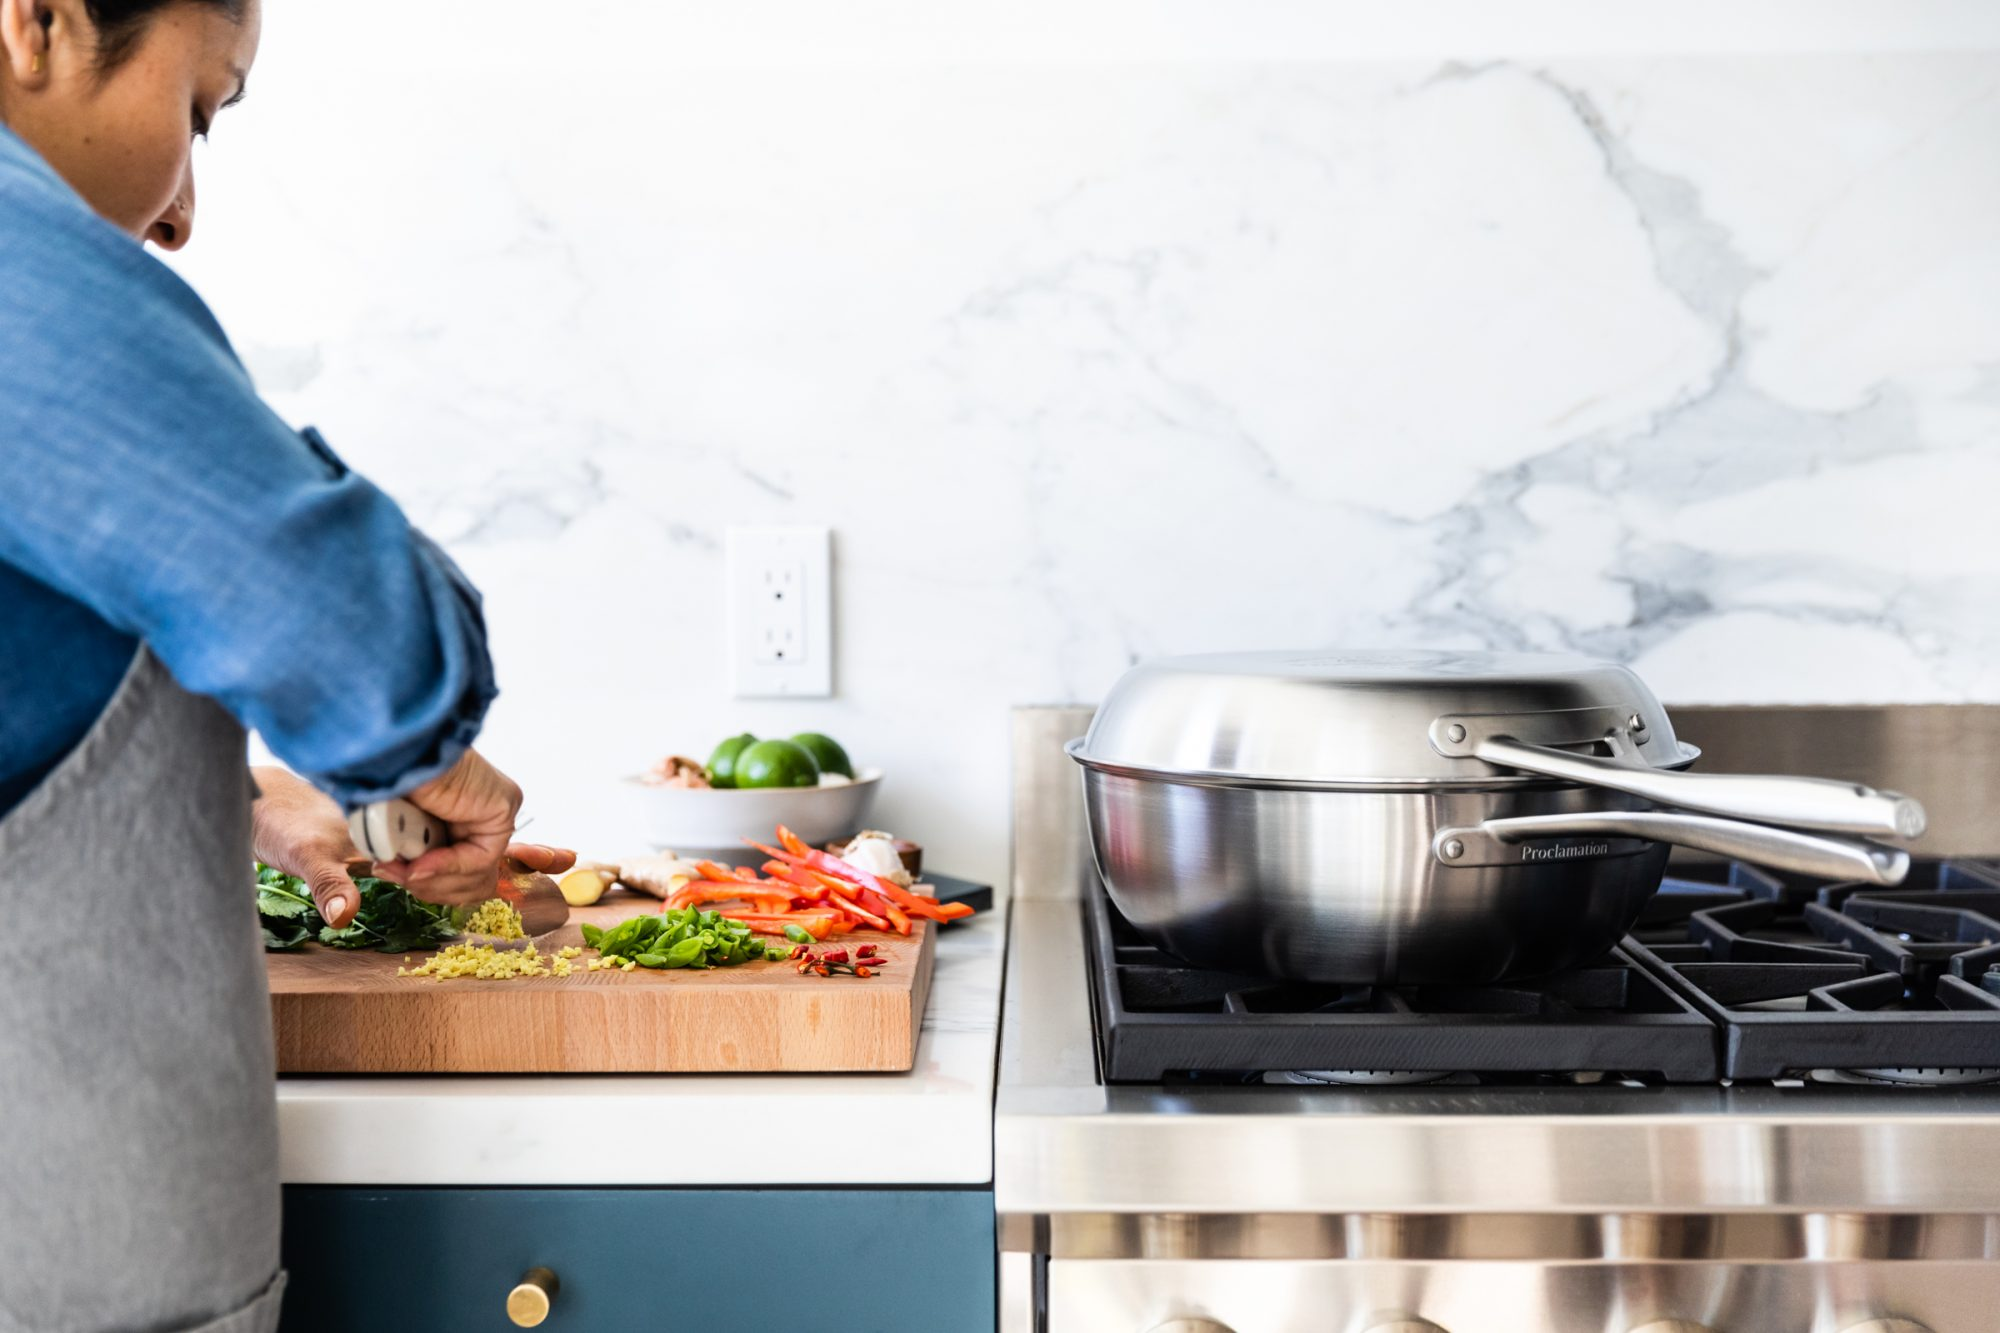 woman prepping vegetables beside stovetop with pans